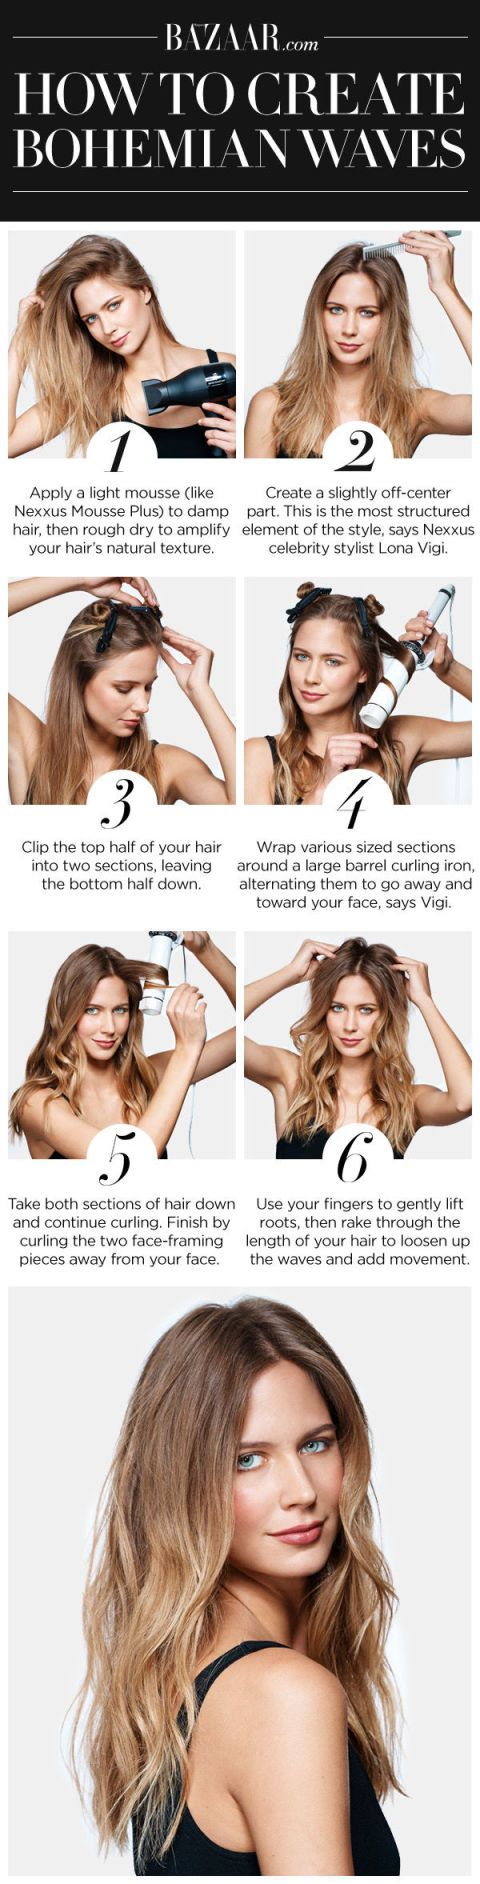 How to Get Bohemian Waves - Messy Waves Hair Tutorial: